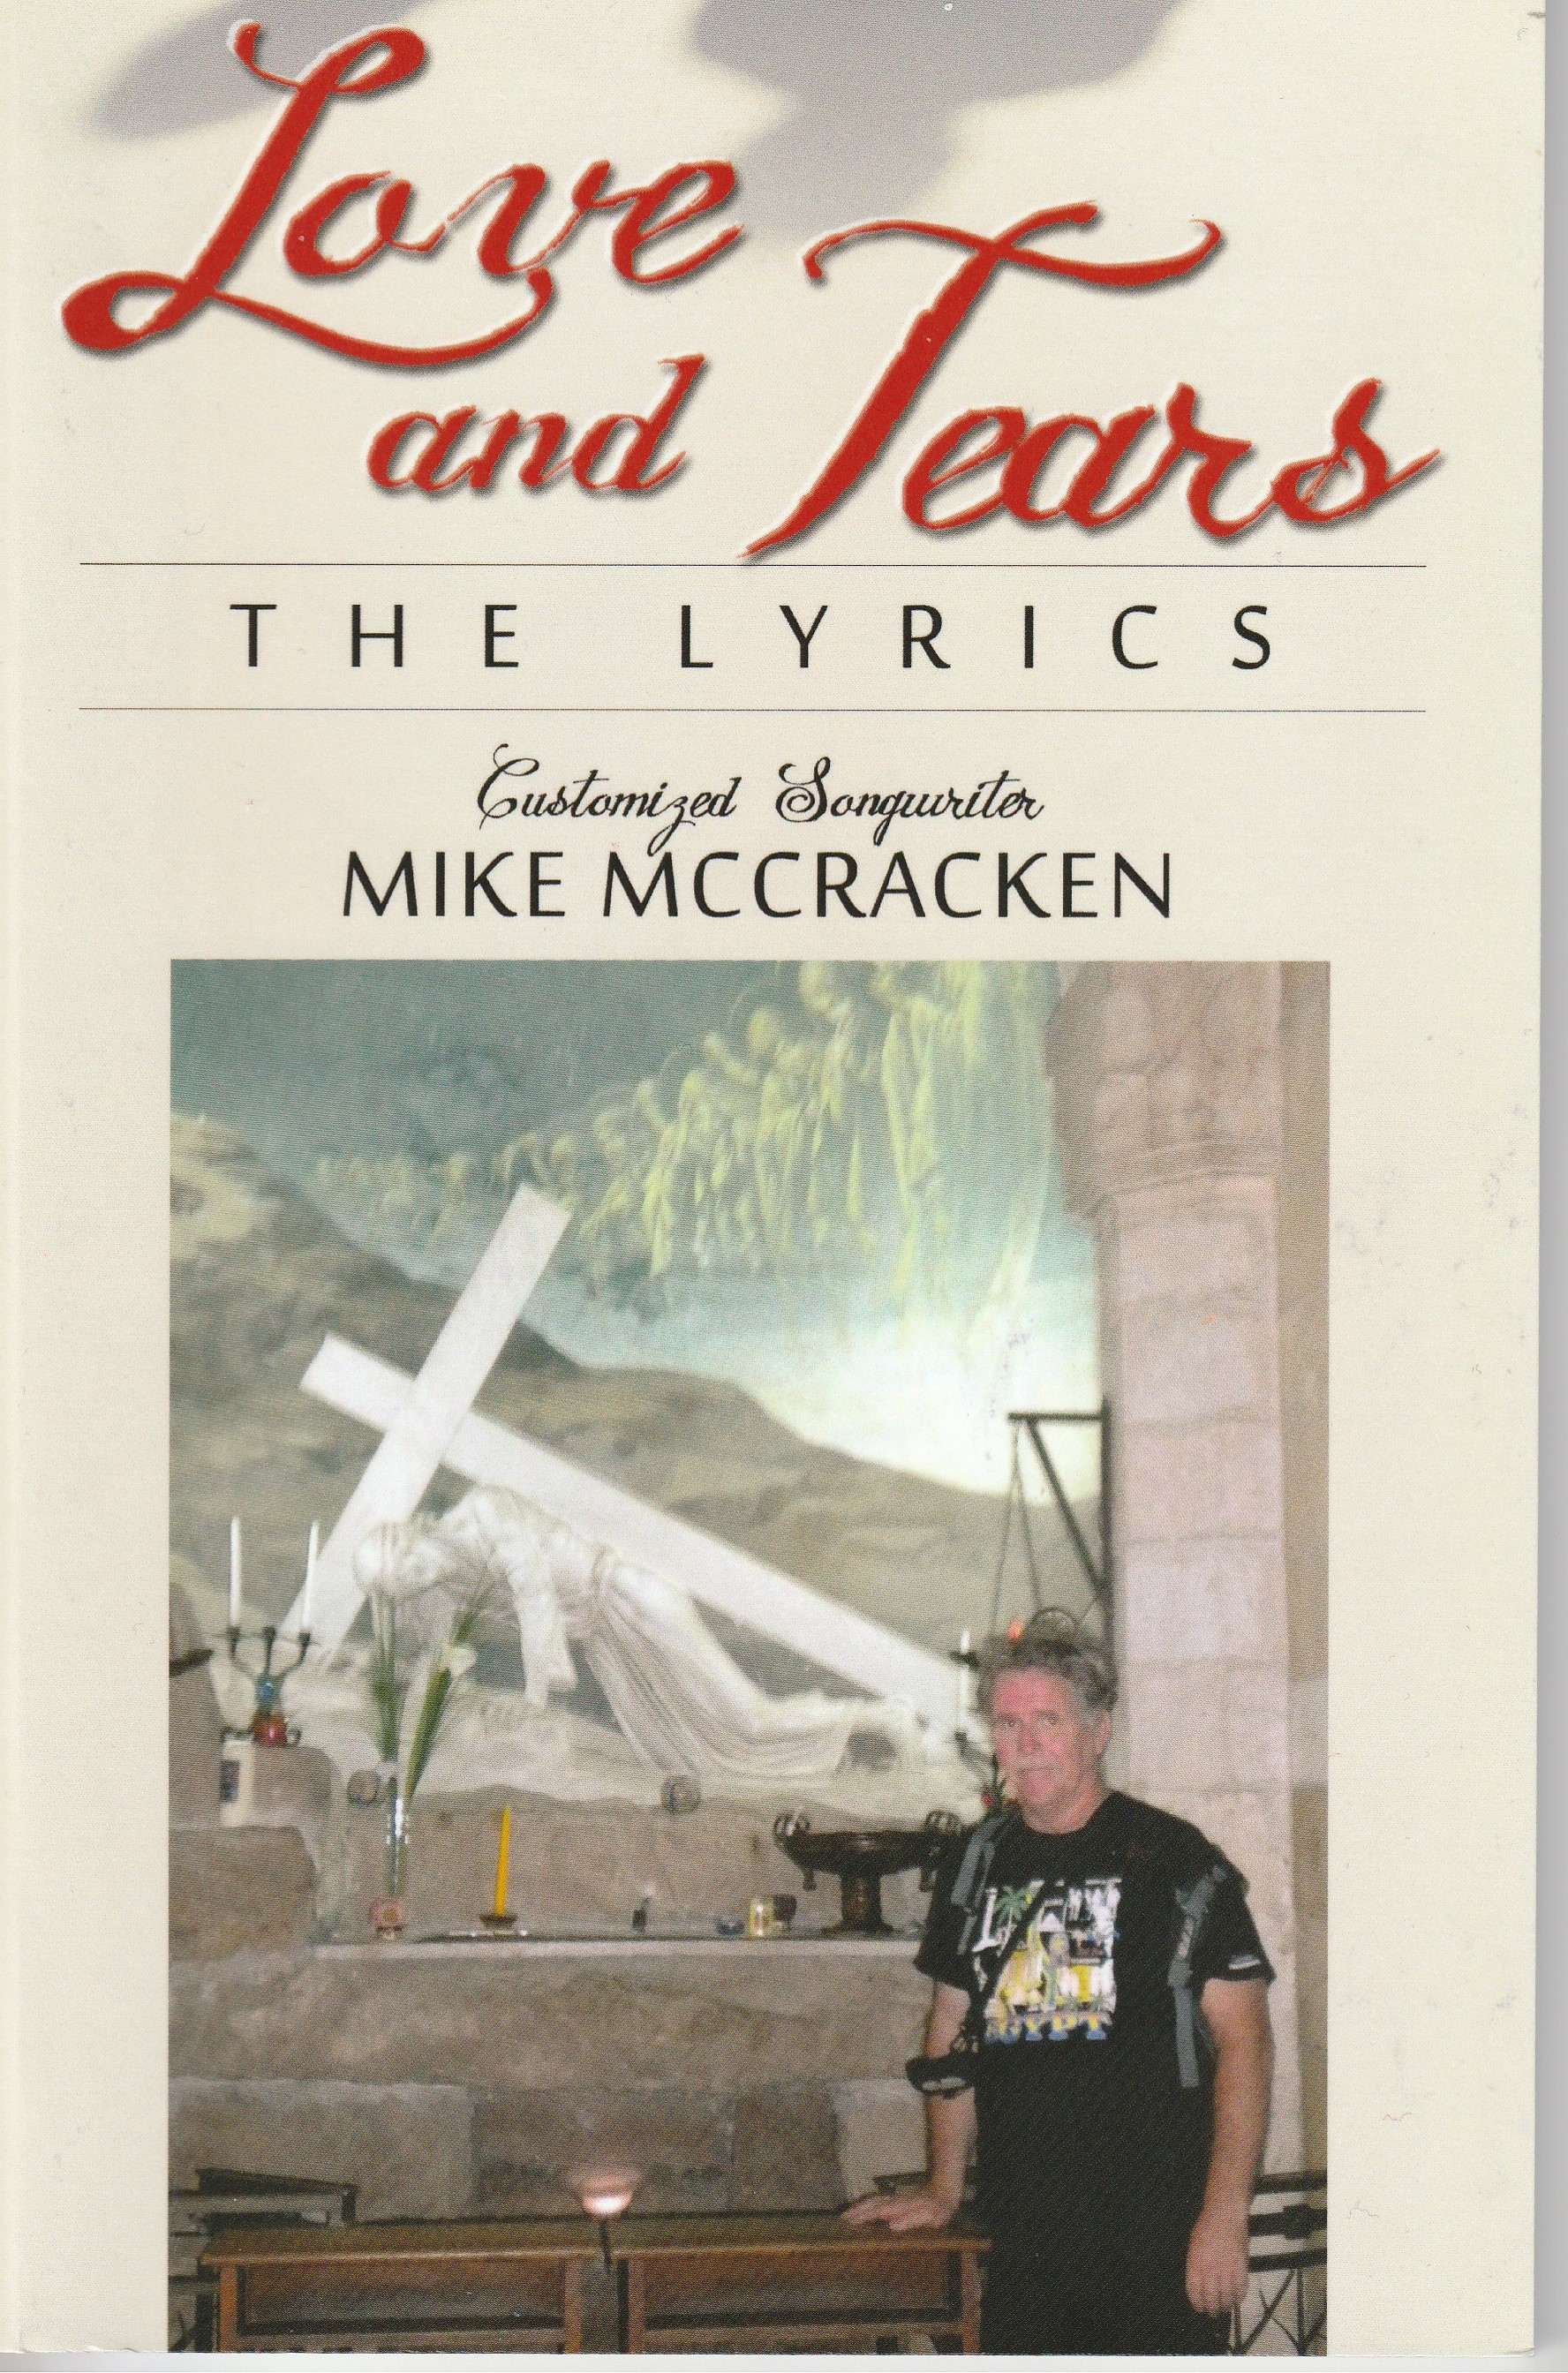 Christian Customized Songwriter Mike McCracken has been writing customized songs most of his life helping People